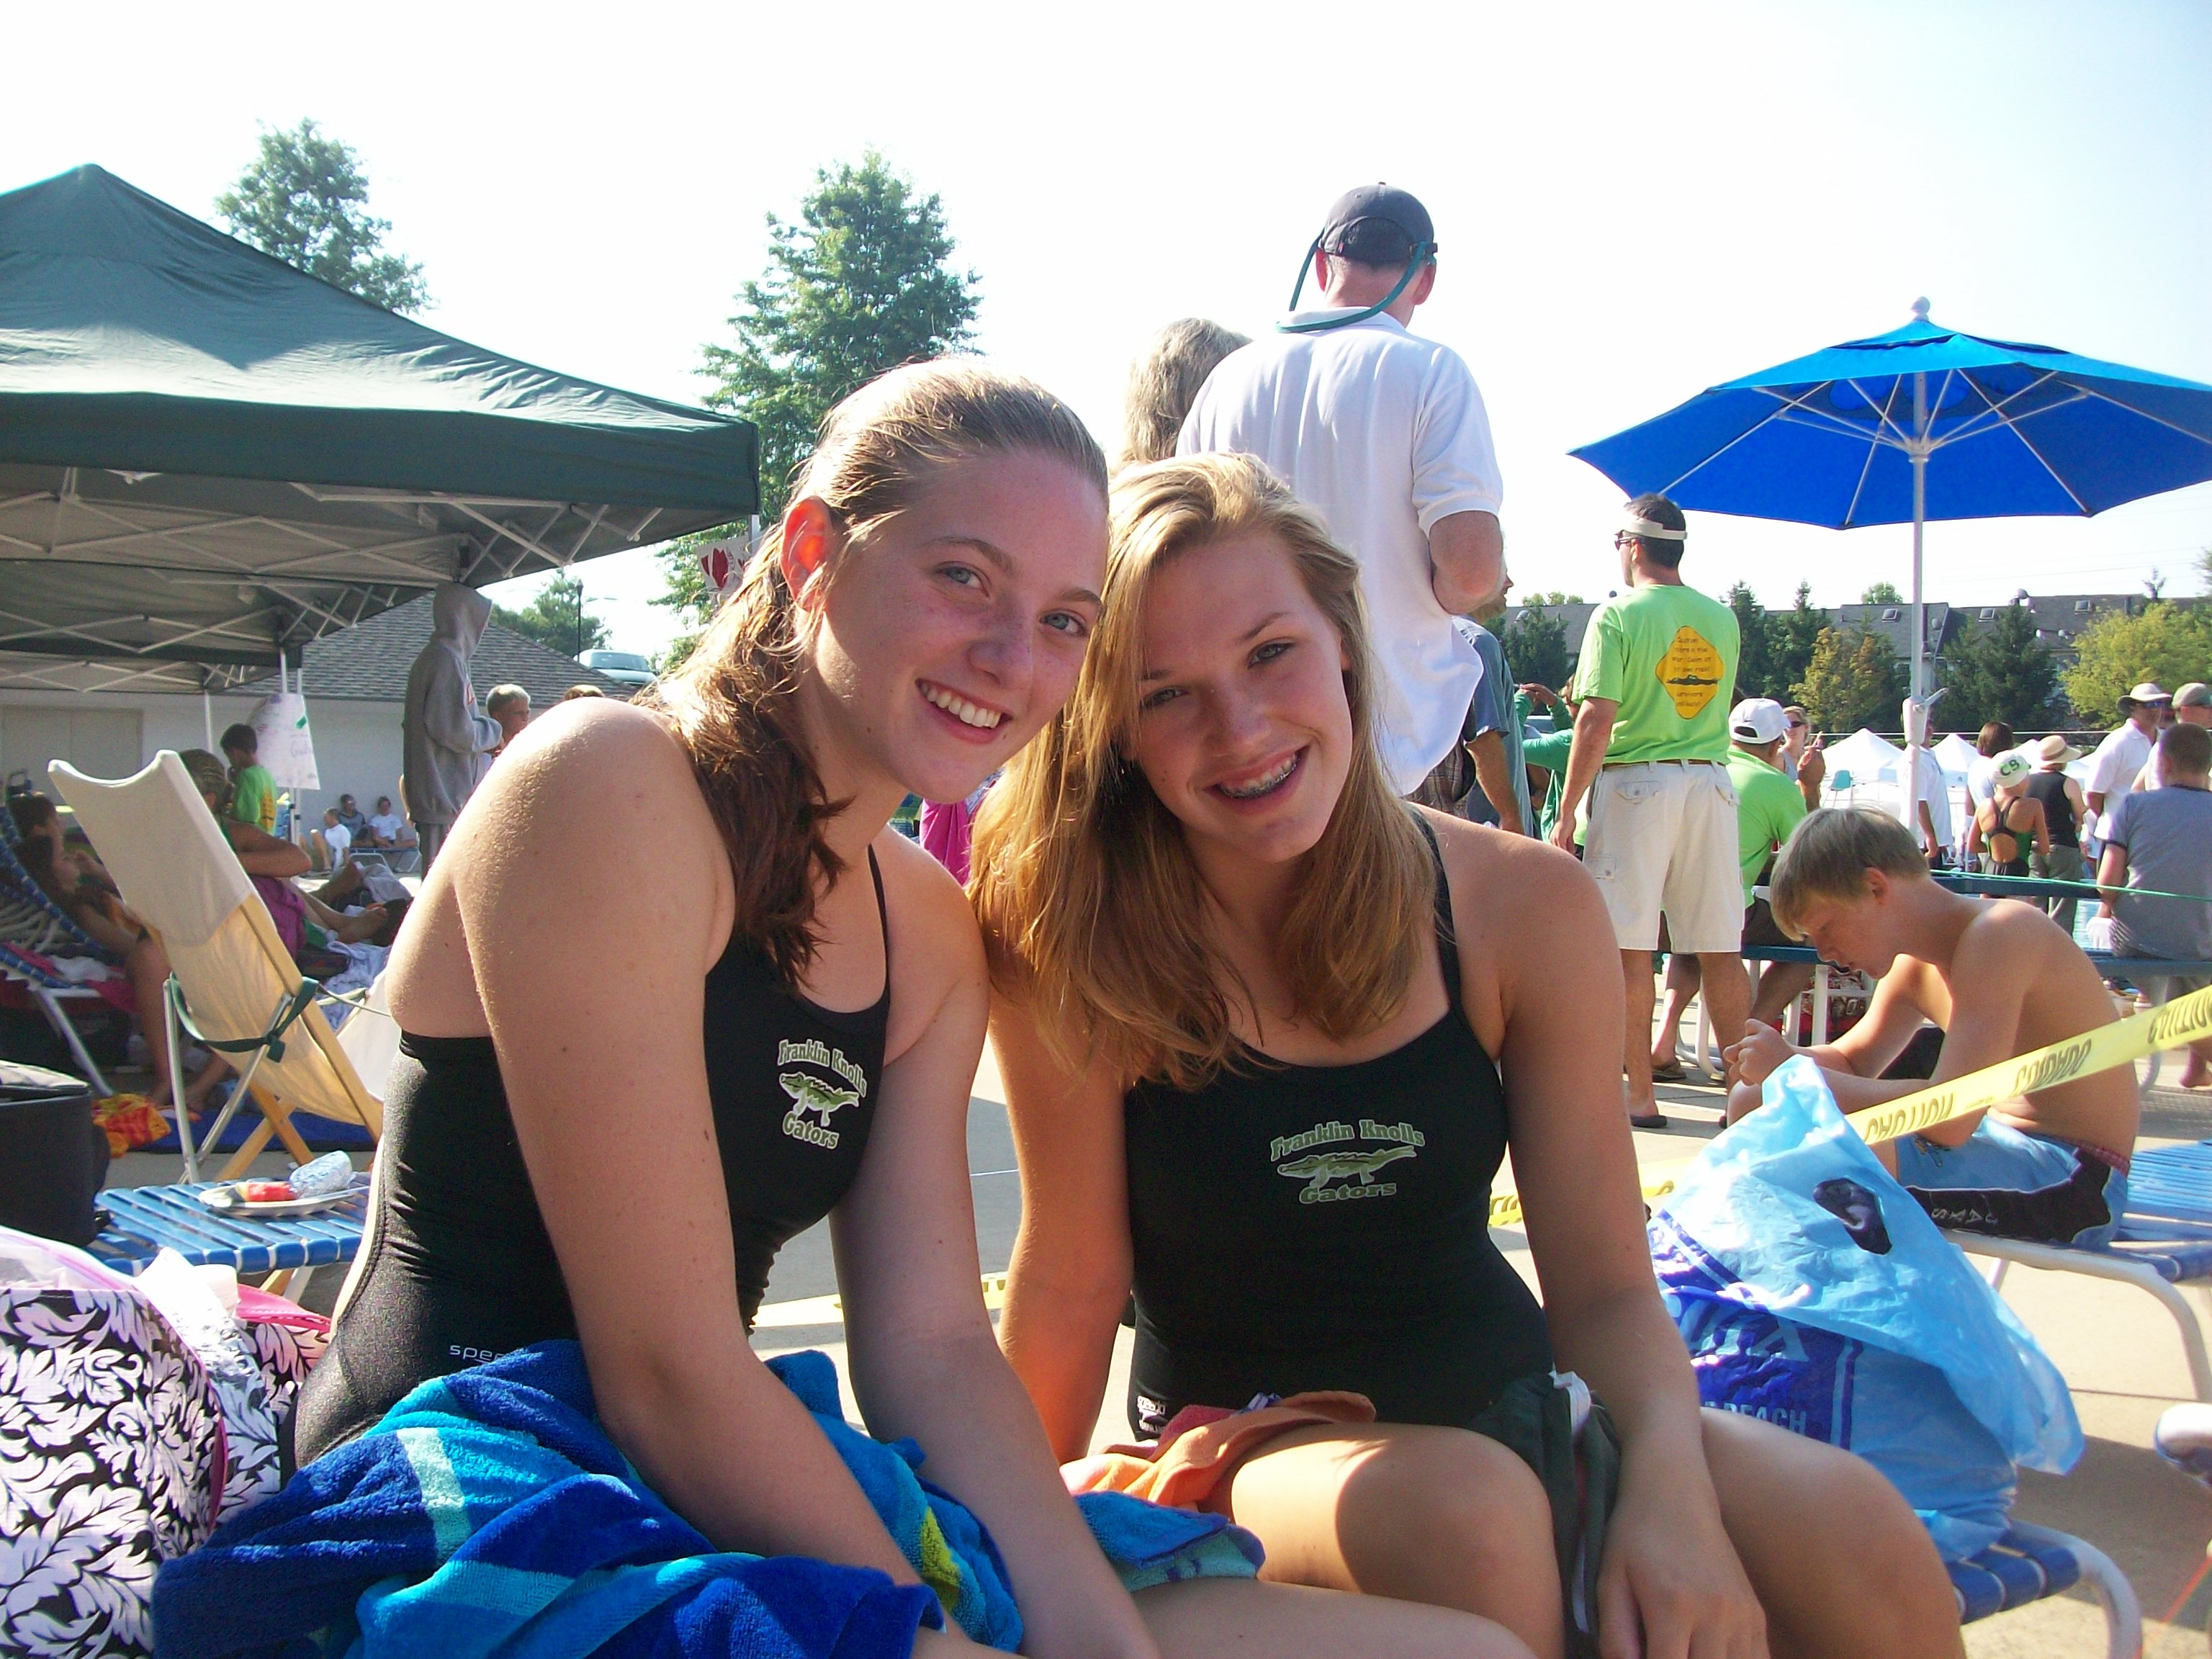 Claire (left) and Molly Branscom at the 2009 Divisionals